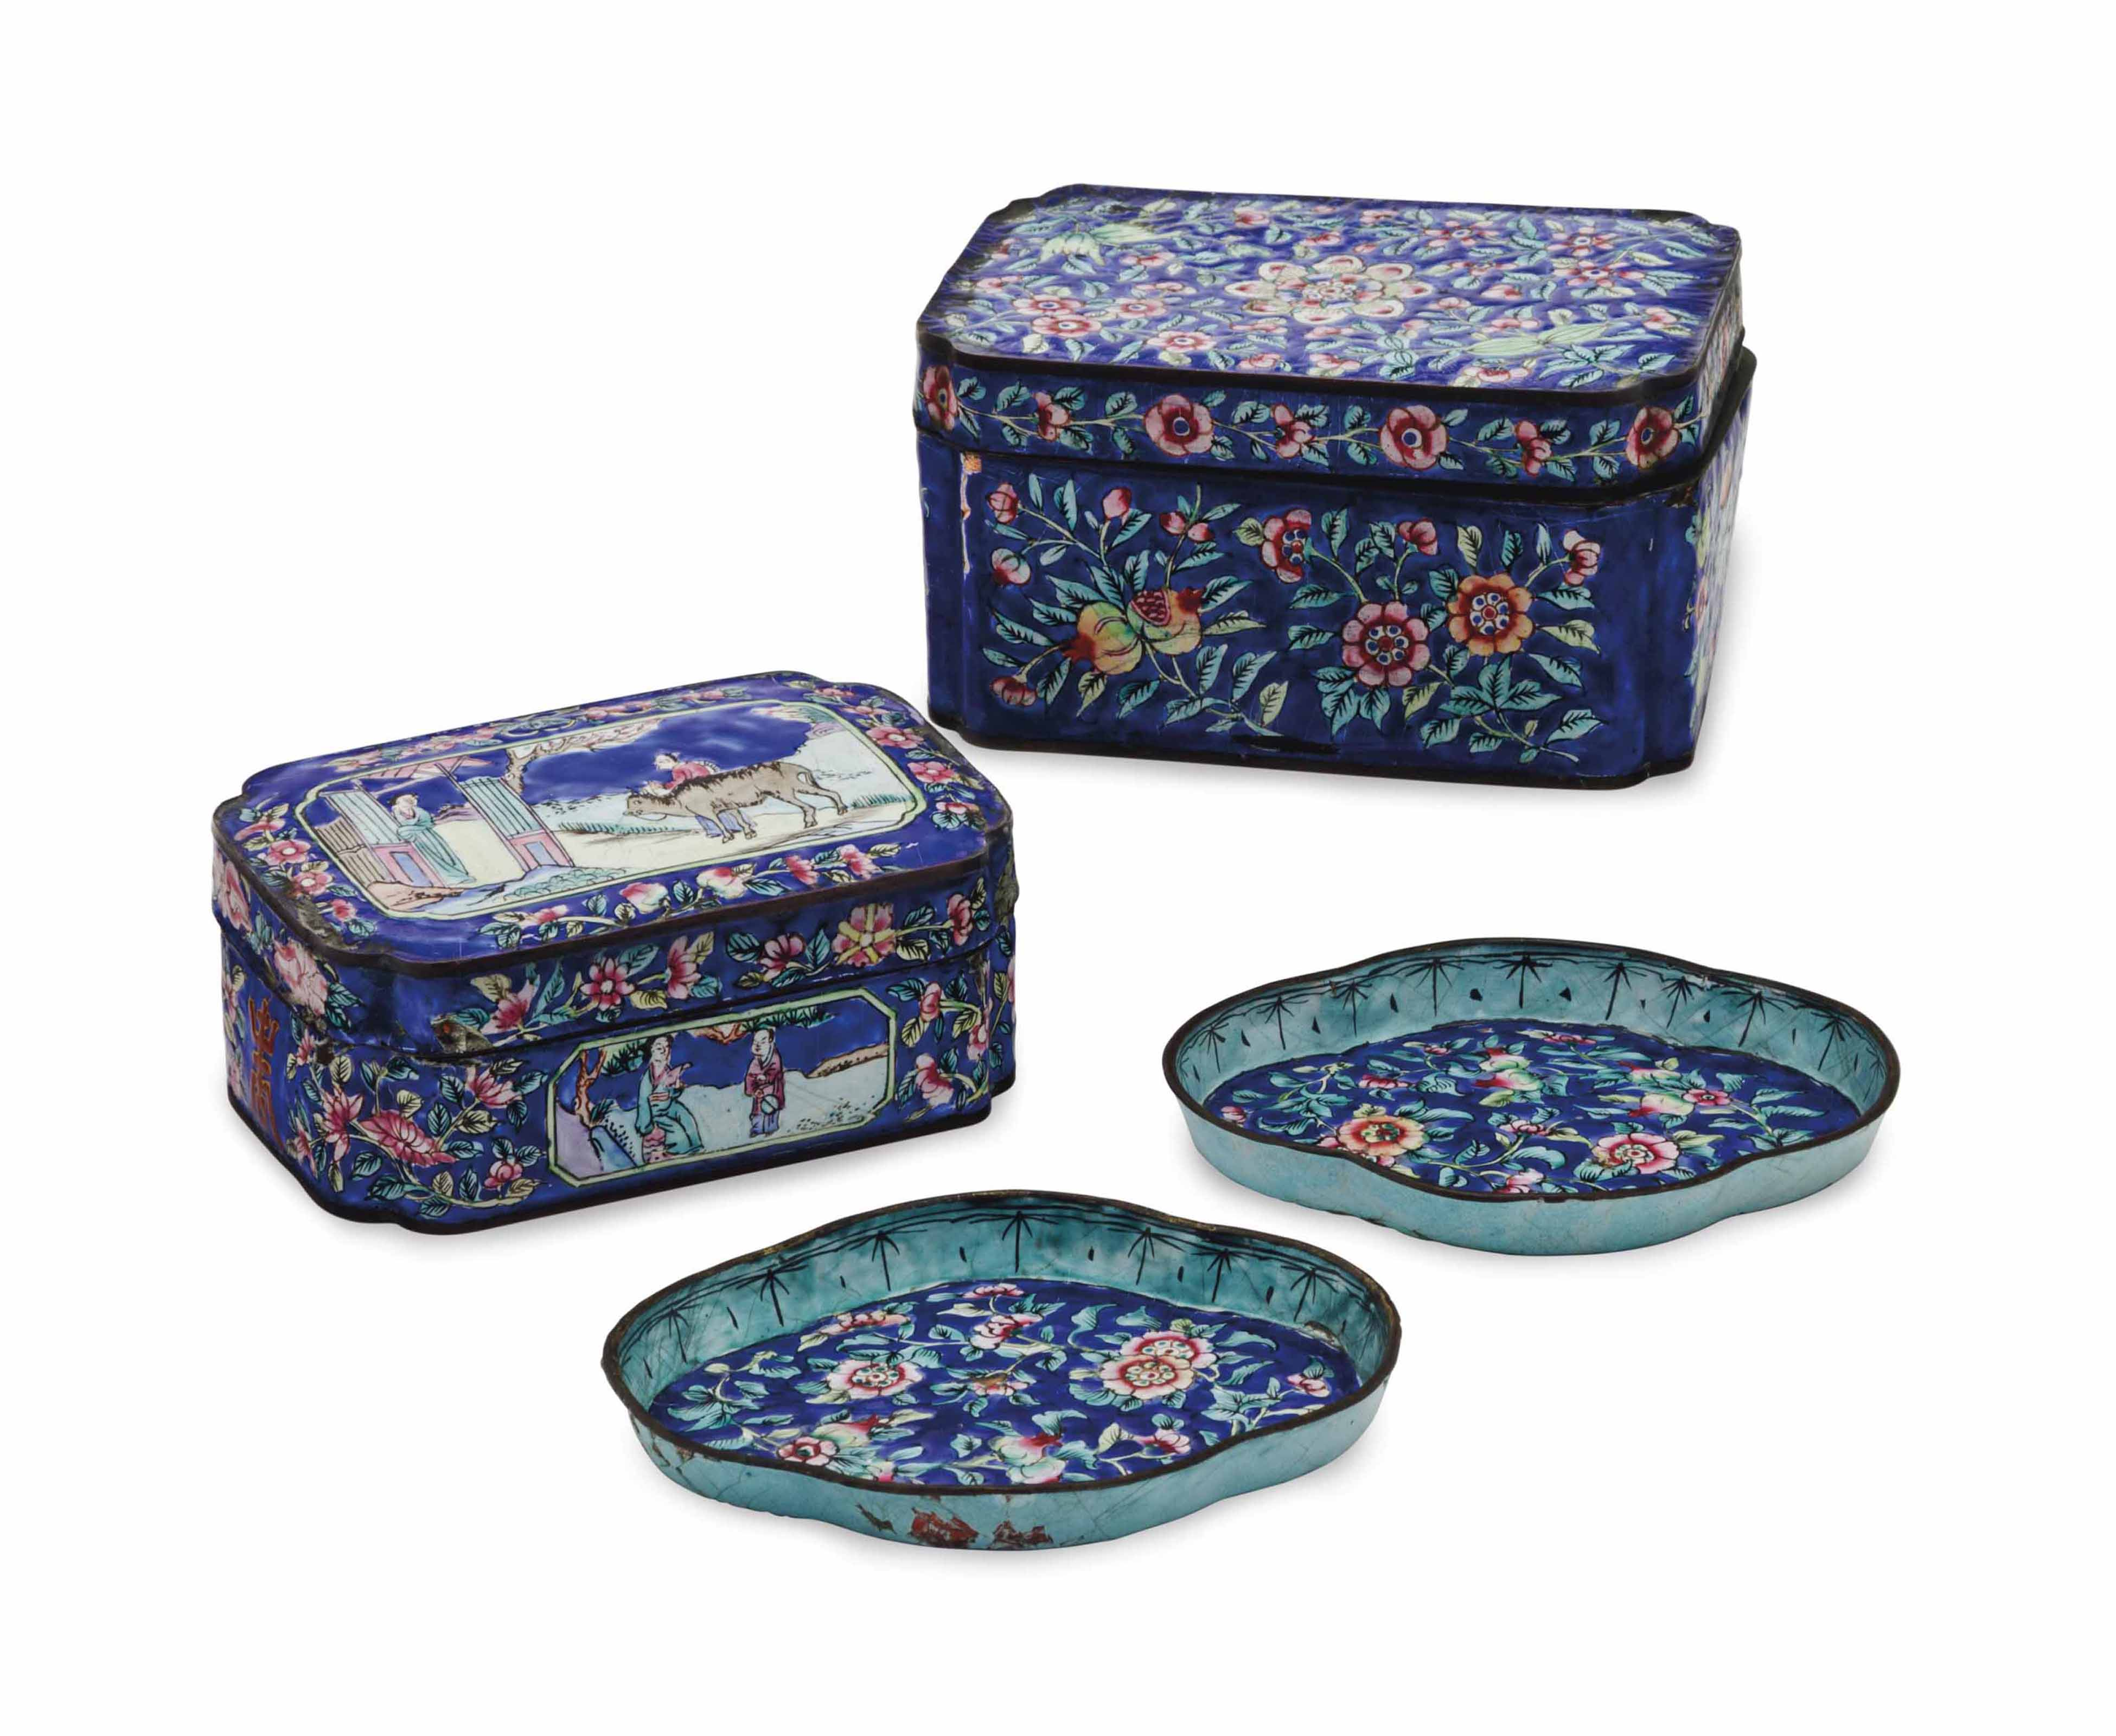 TWO CHINESE ENAMEL BOXES AND C